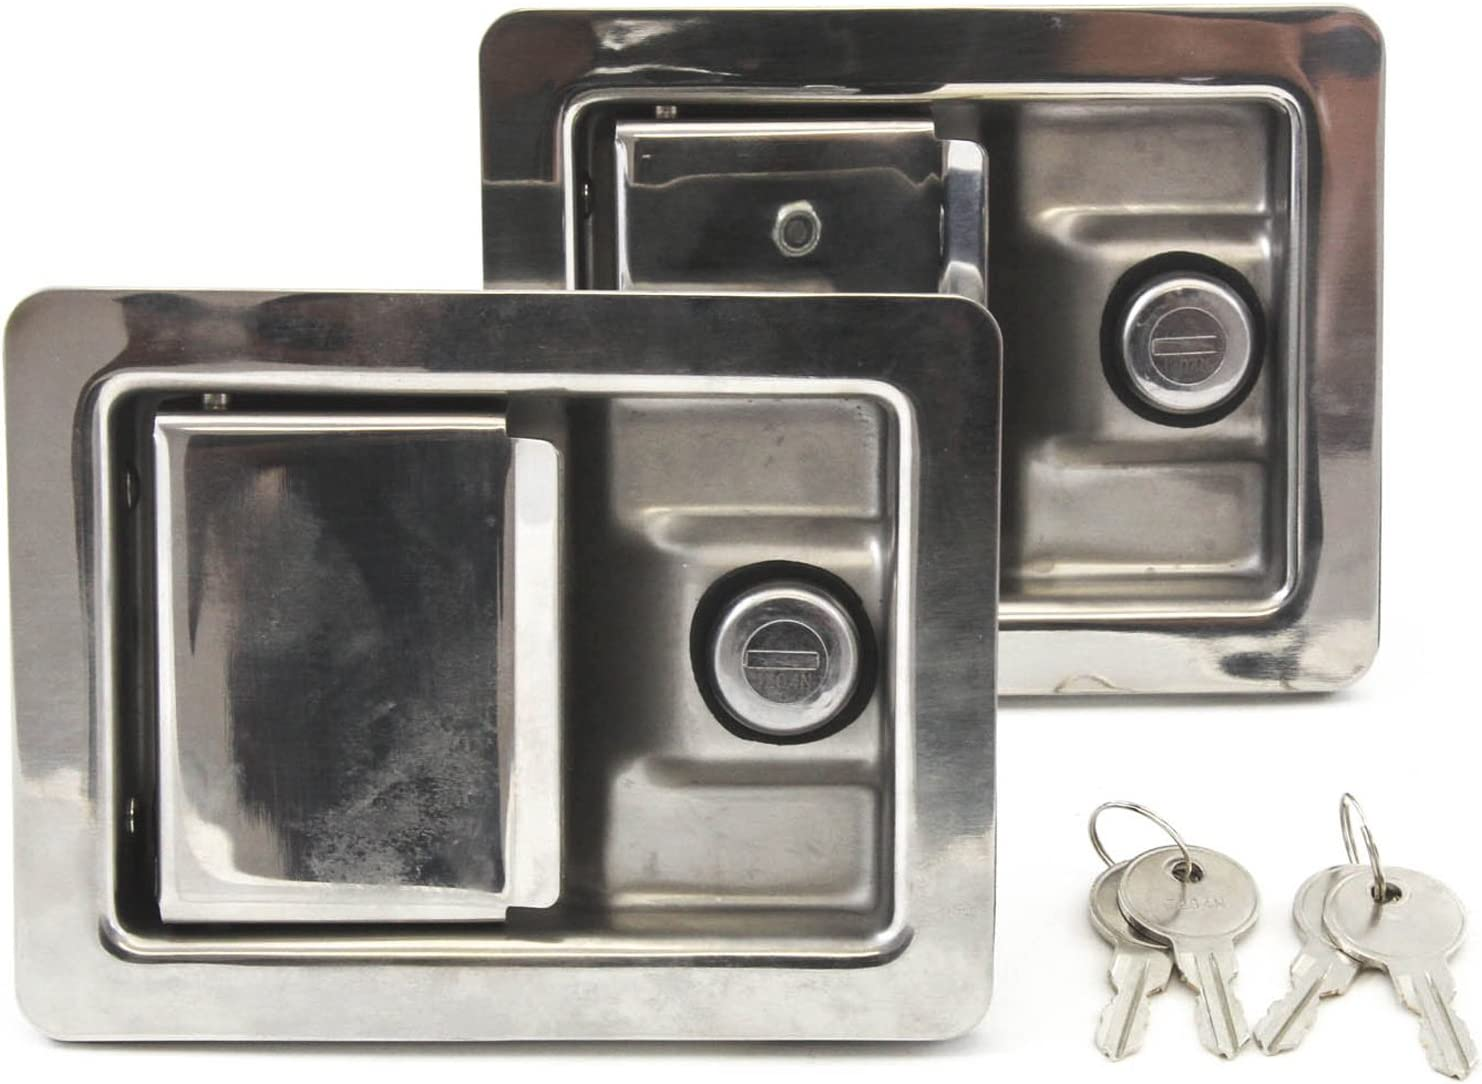 Red Hound Auto 2 Stainless New life Door Directly managed store Trailer Handle L Lock Toolbox RV